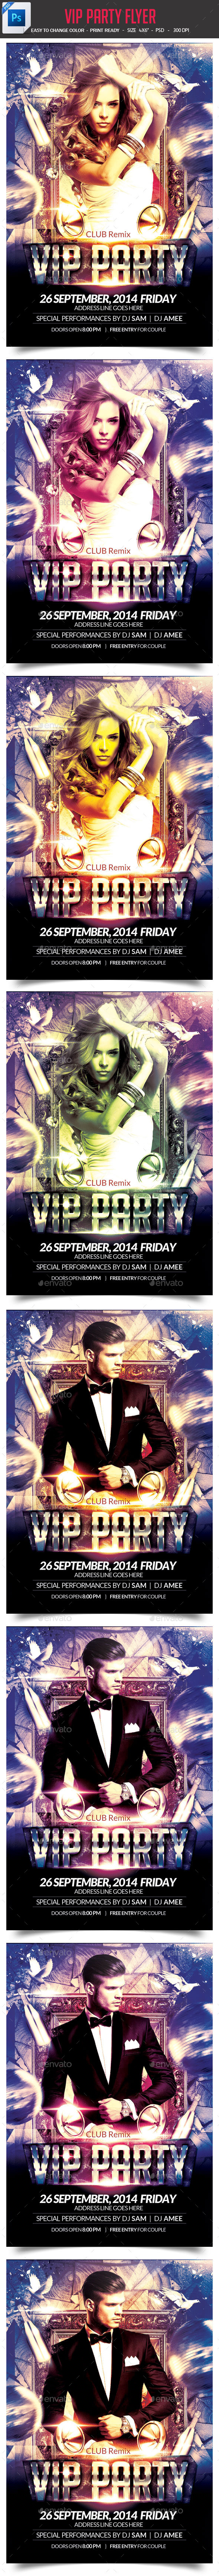 GraphicRiver VIP Party Flyer 8975614